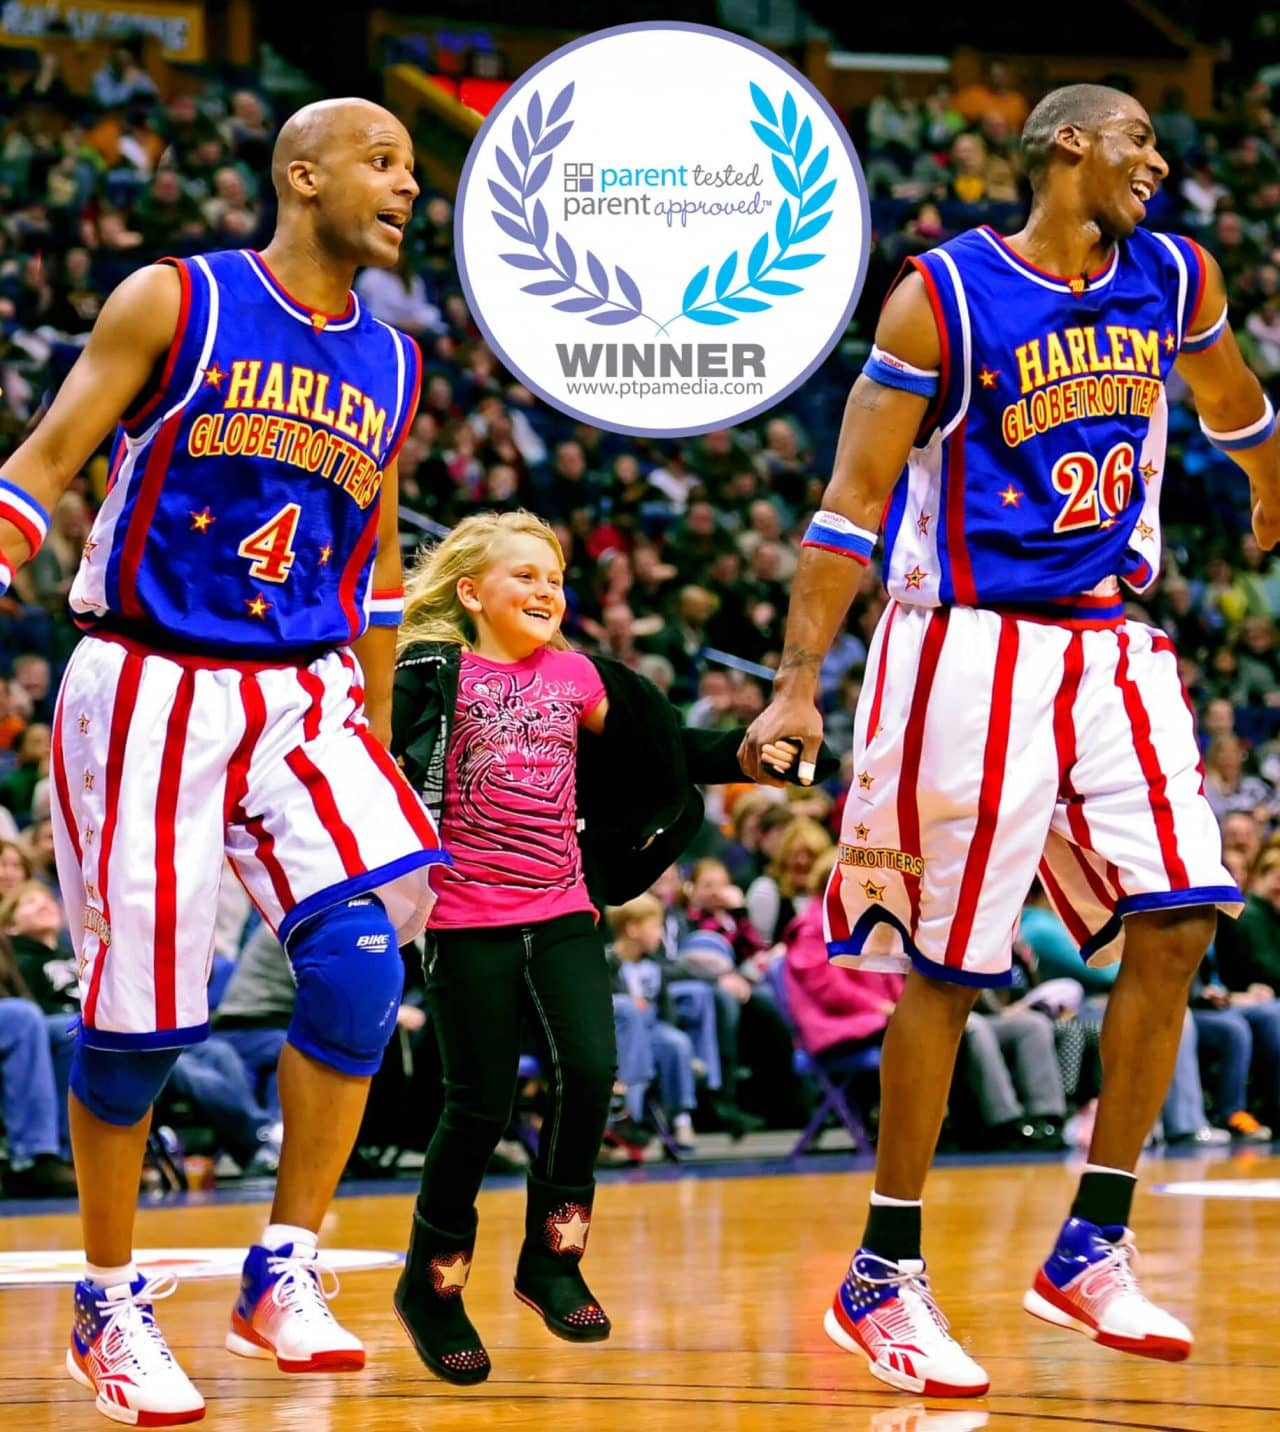 Harlem Globetrotters with Flight Time (left) and Hi-Lite